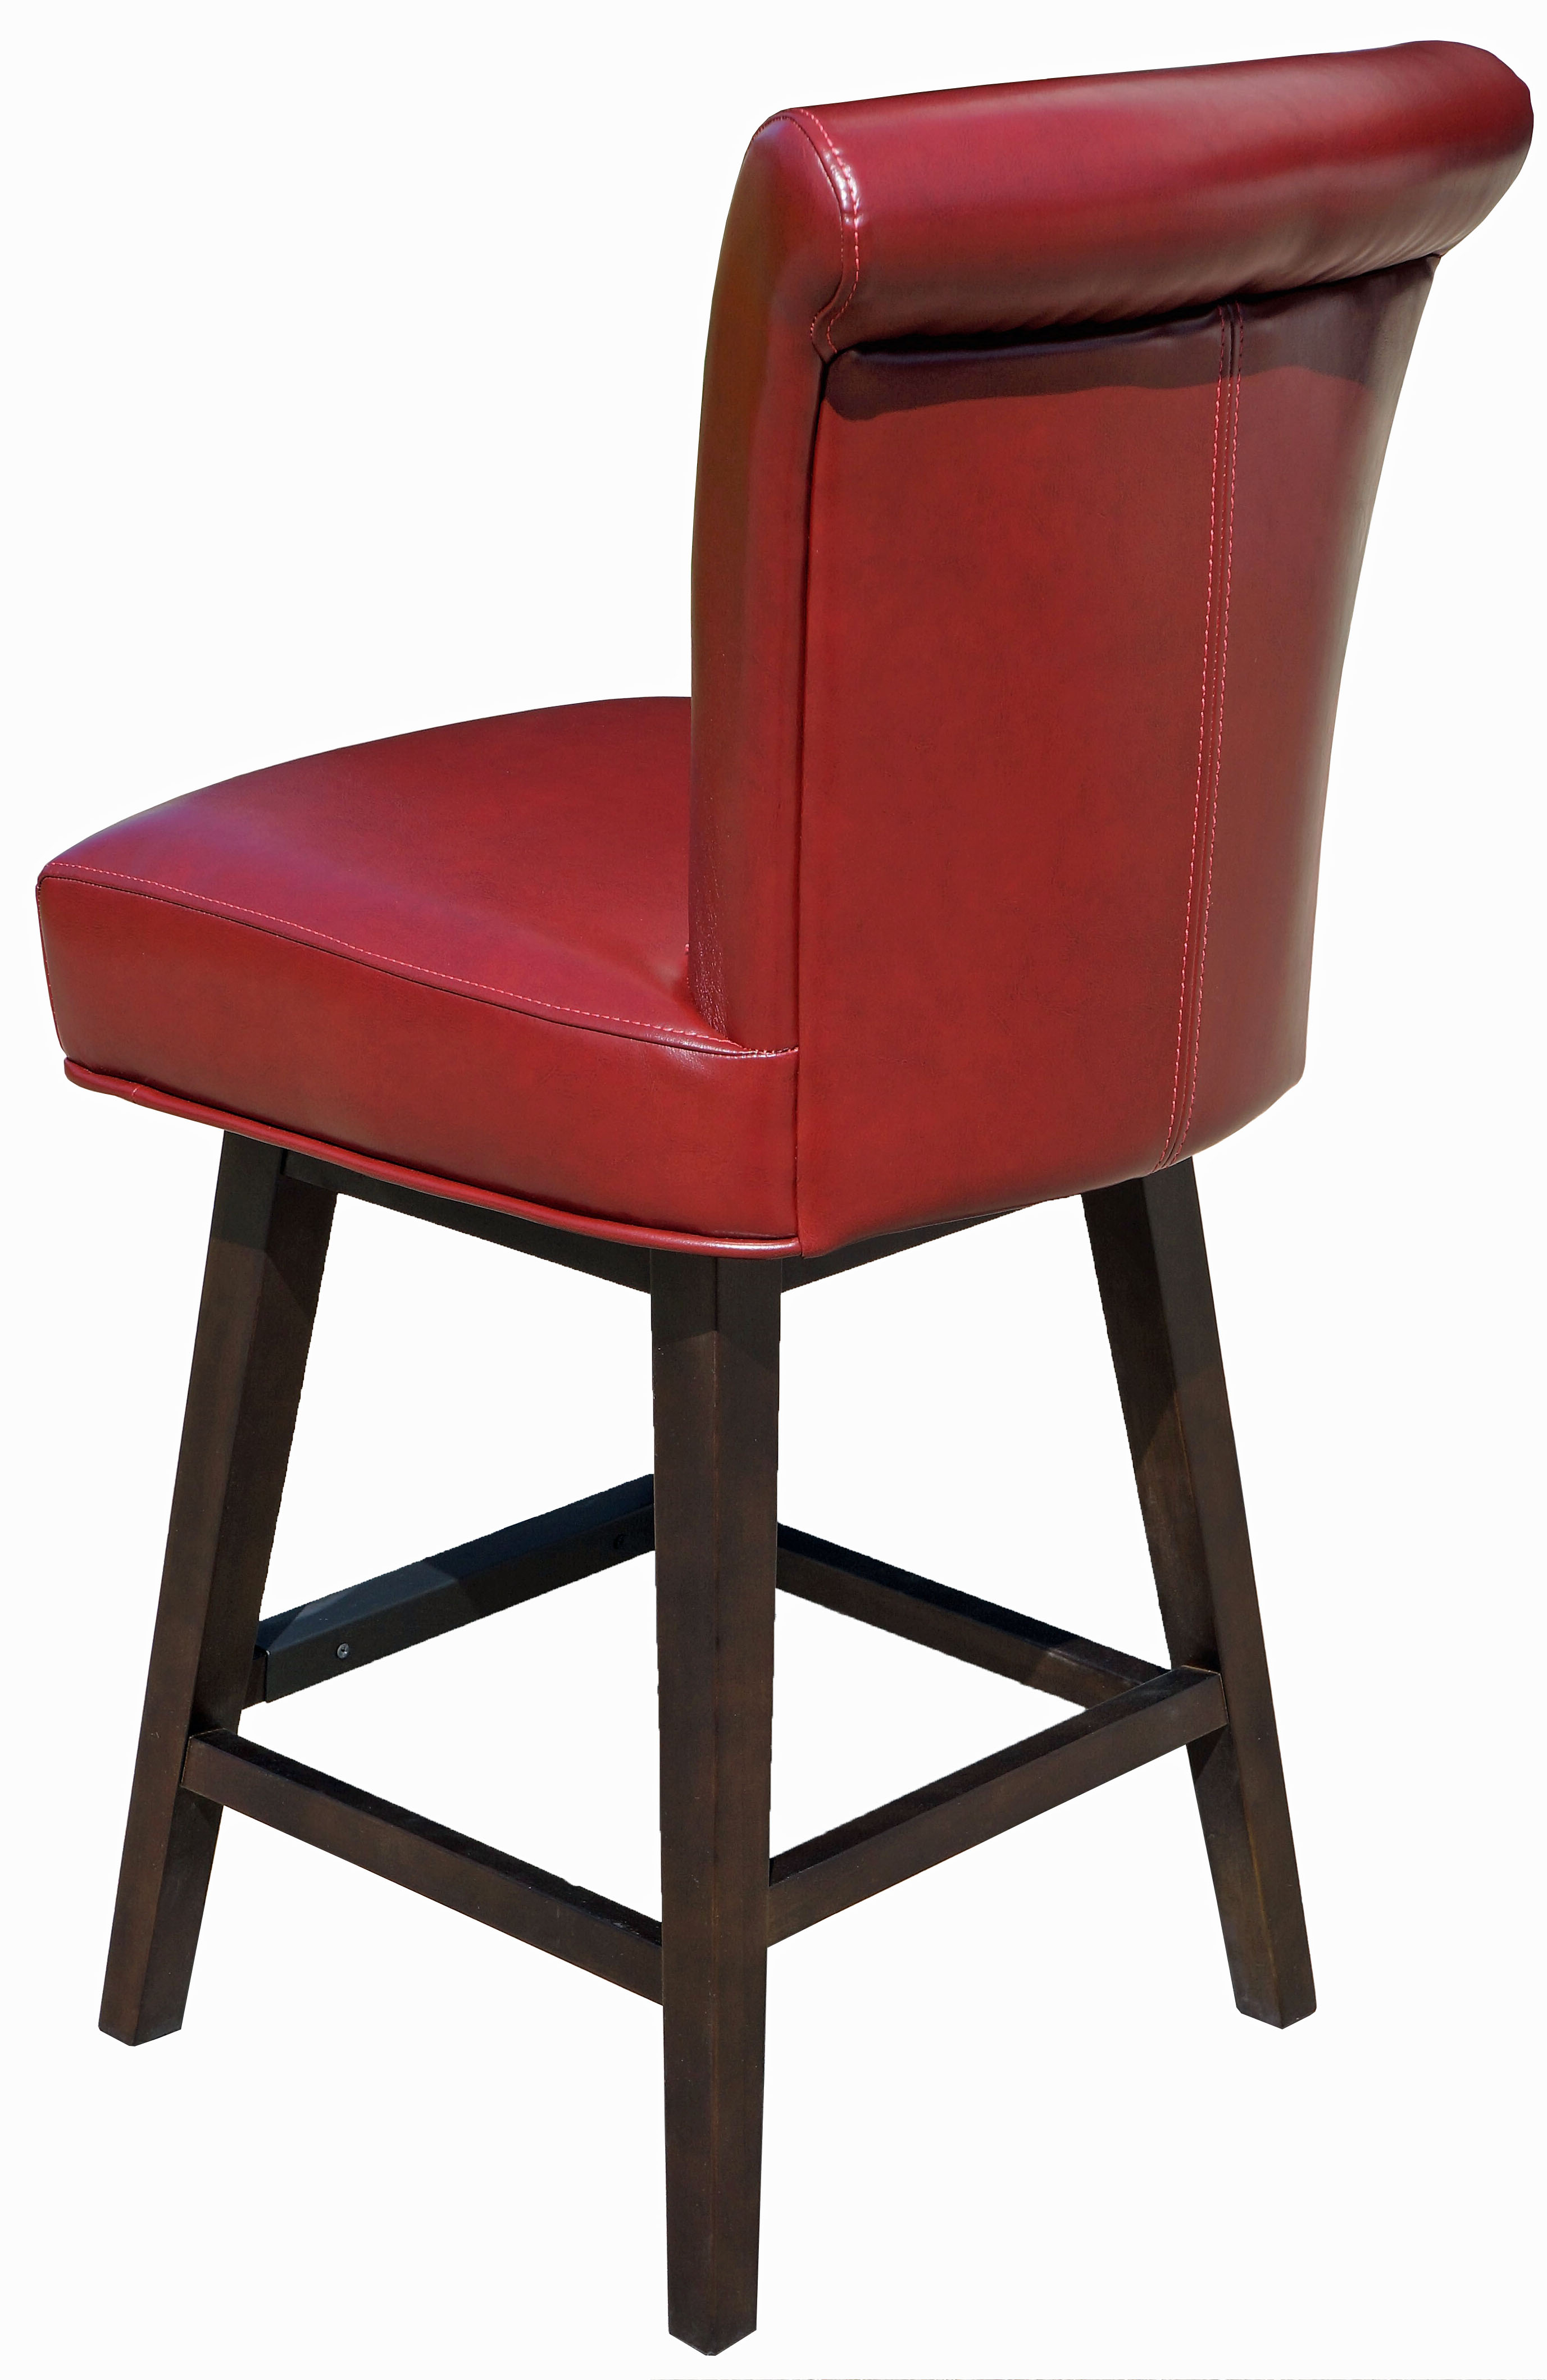 Kitchen Counter Swivel Chairs Bar Stools And Kitchen Counter Stools Red Swivel Kitchen